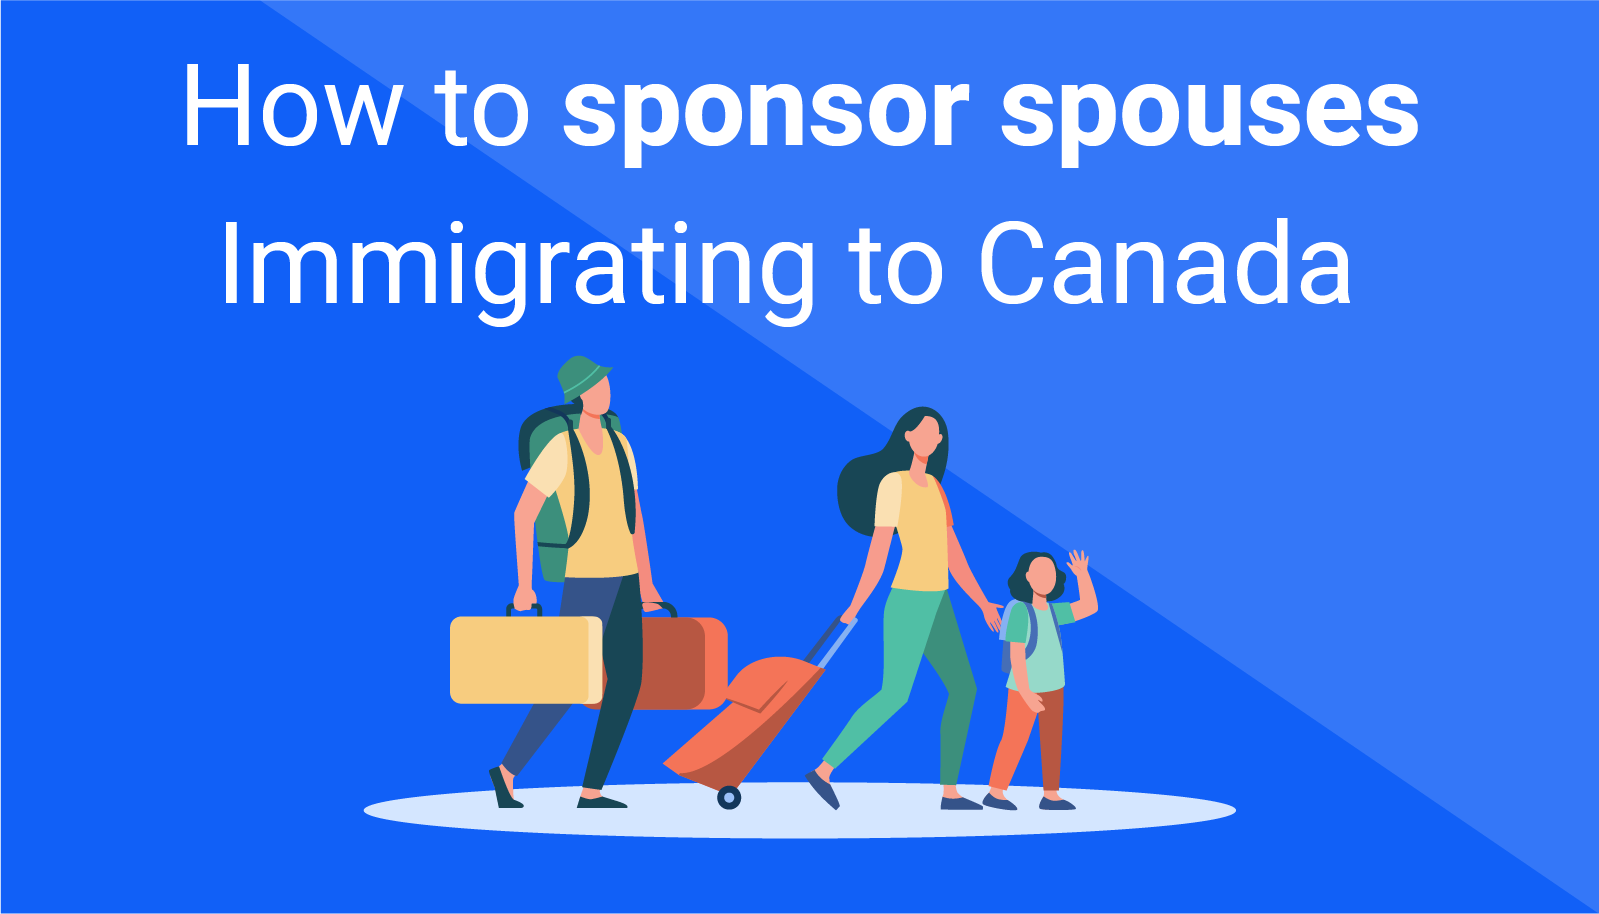 How to sponsor spouses immigrating to Canada